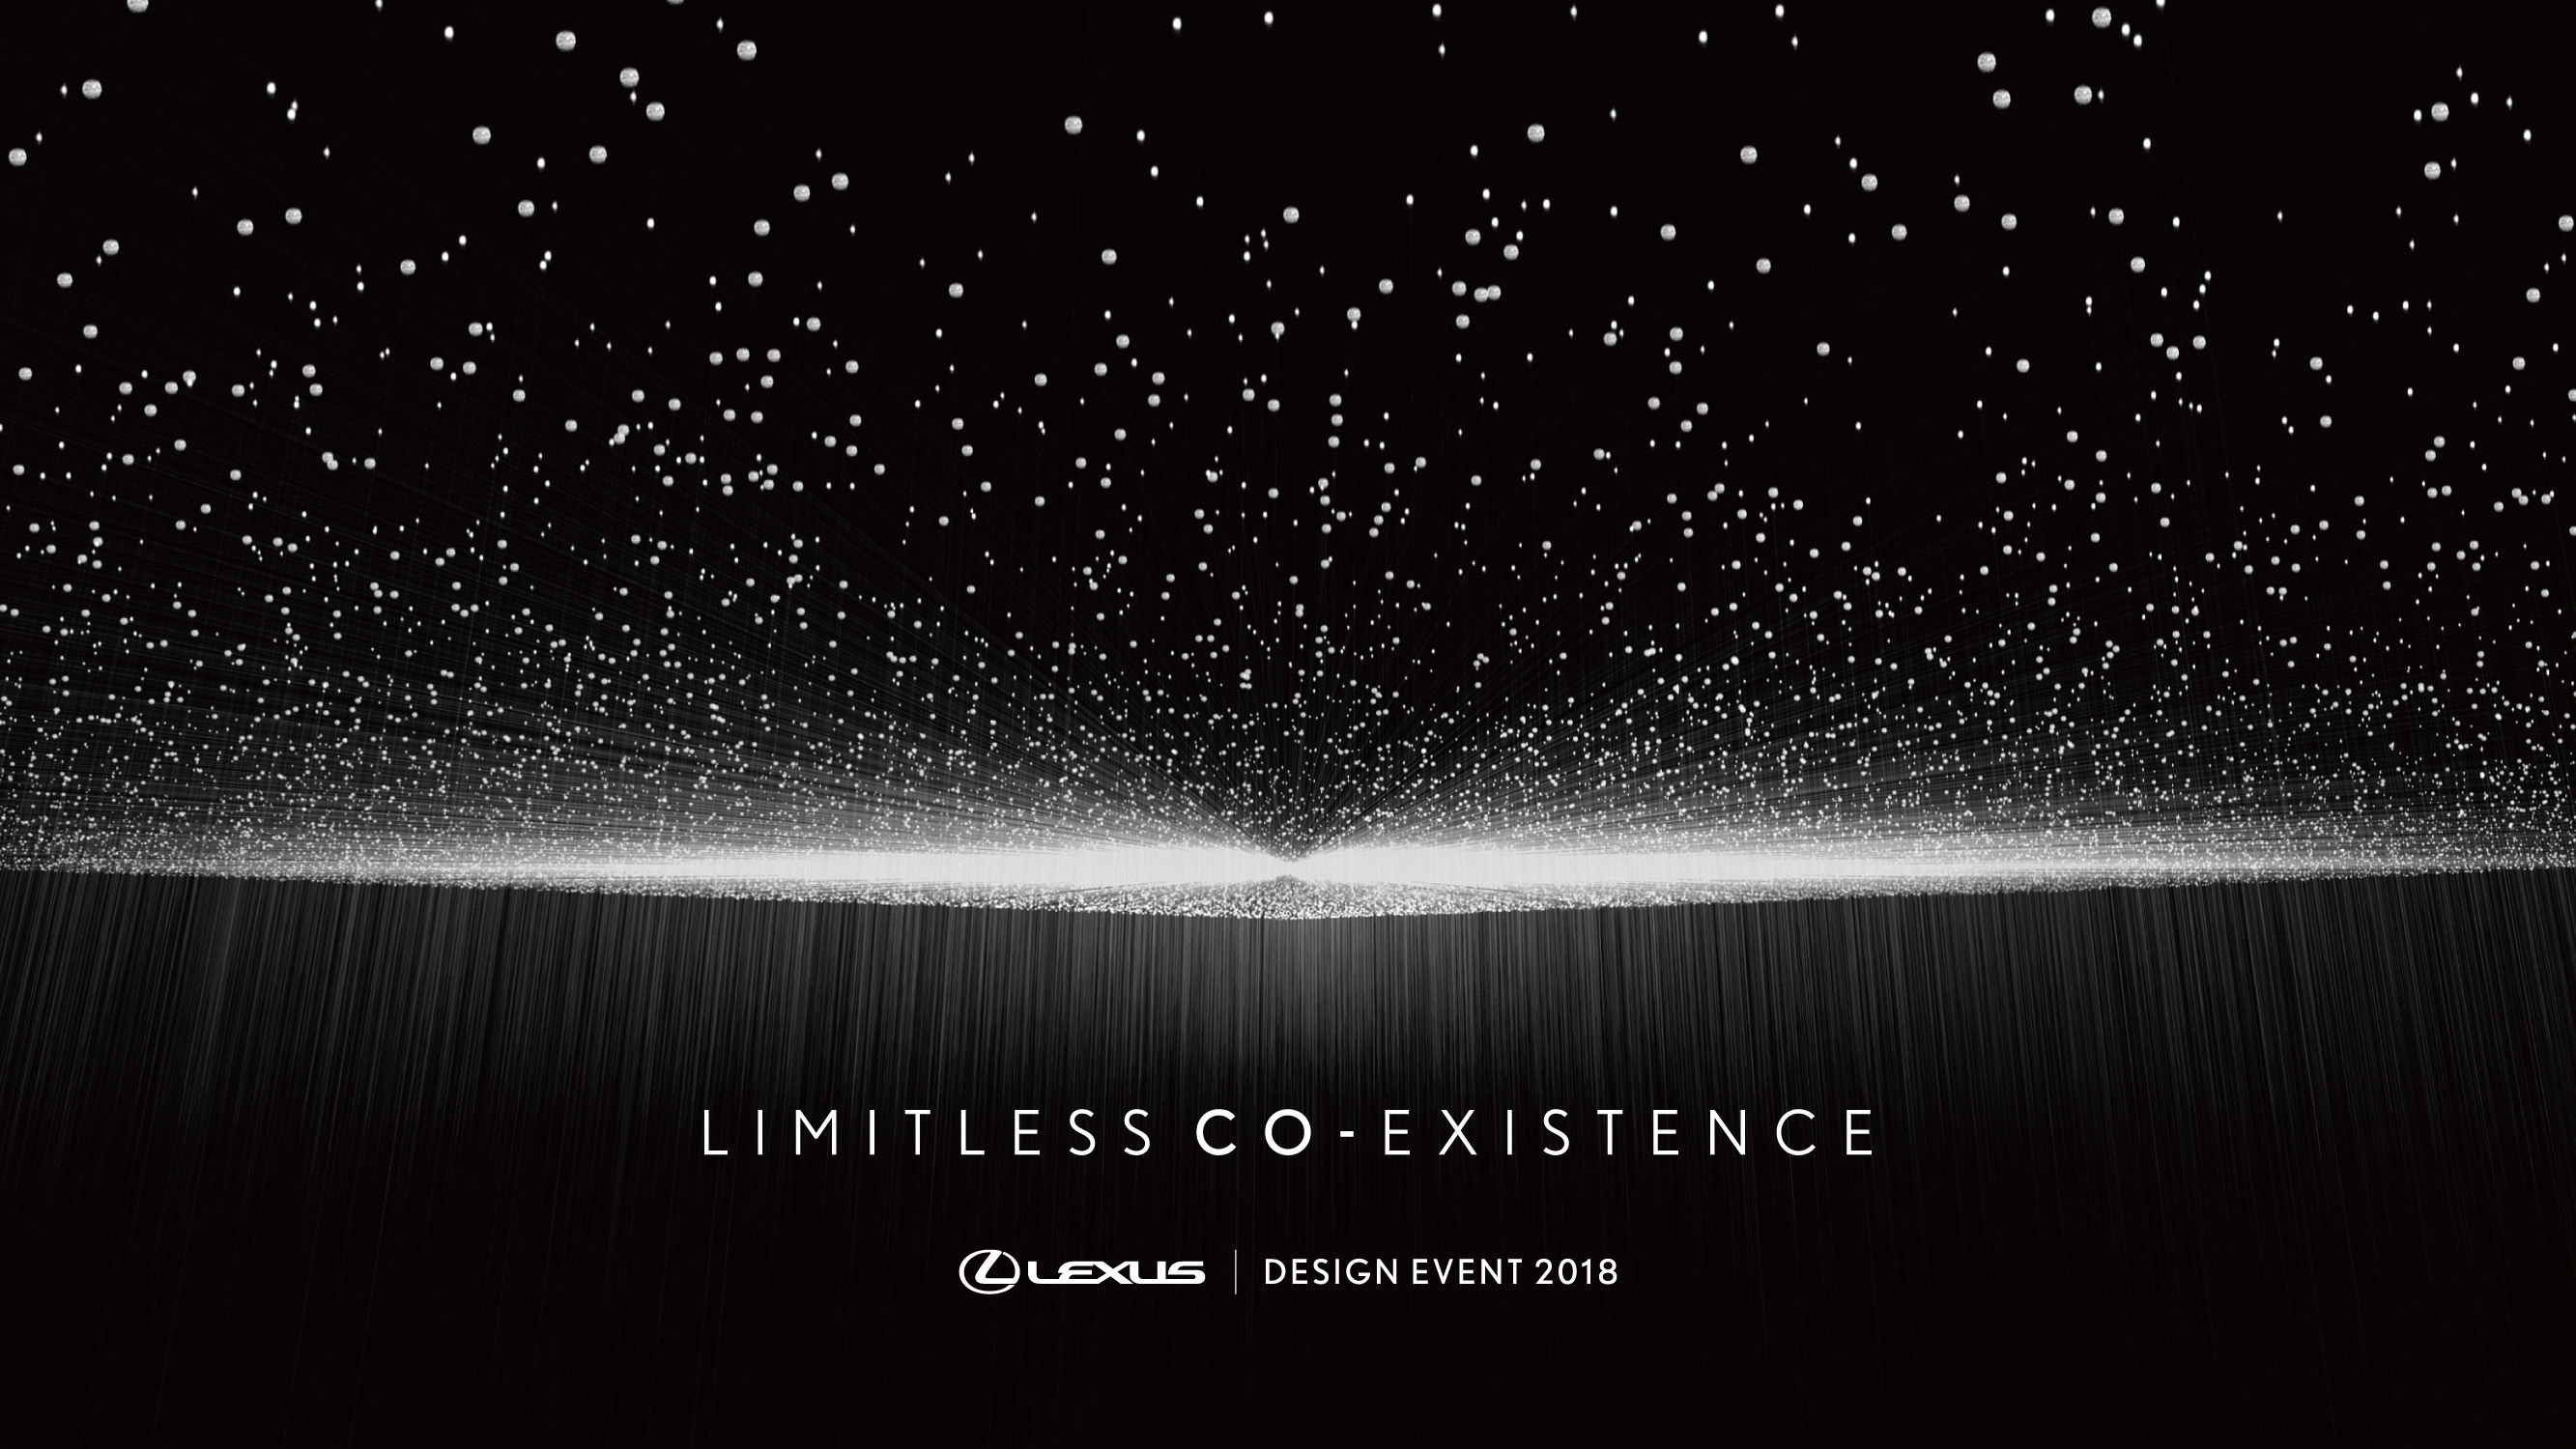 Lexus 'Limitless Co-Existence' Event at Milan Design Week - A Breathtaking Celebration of Harmonious Individuality